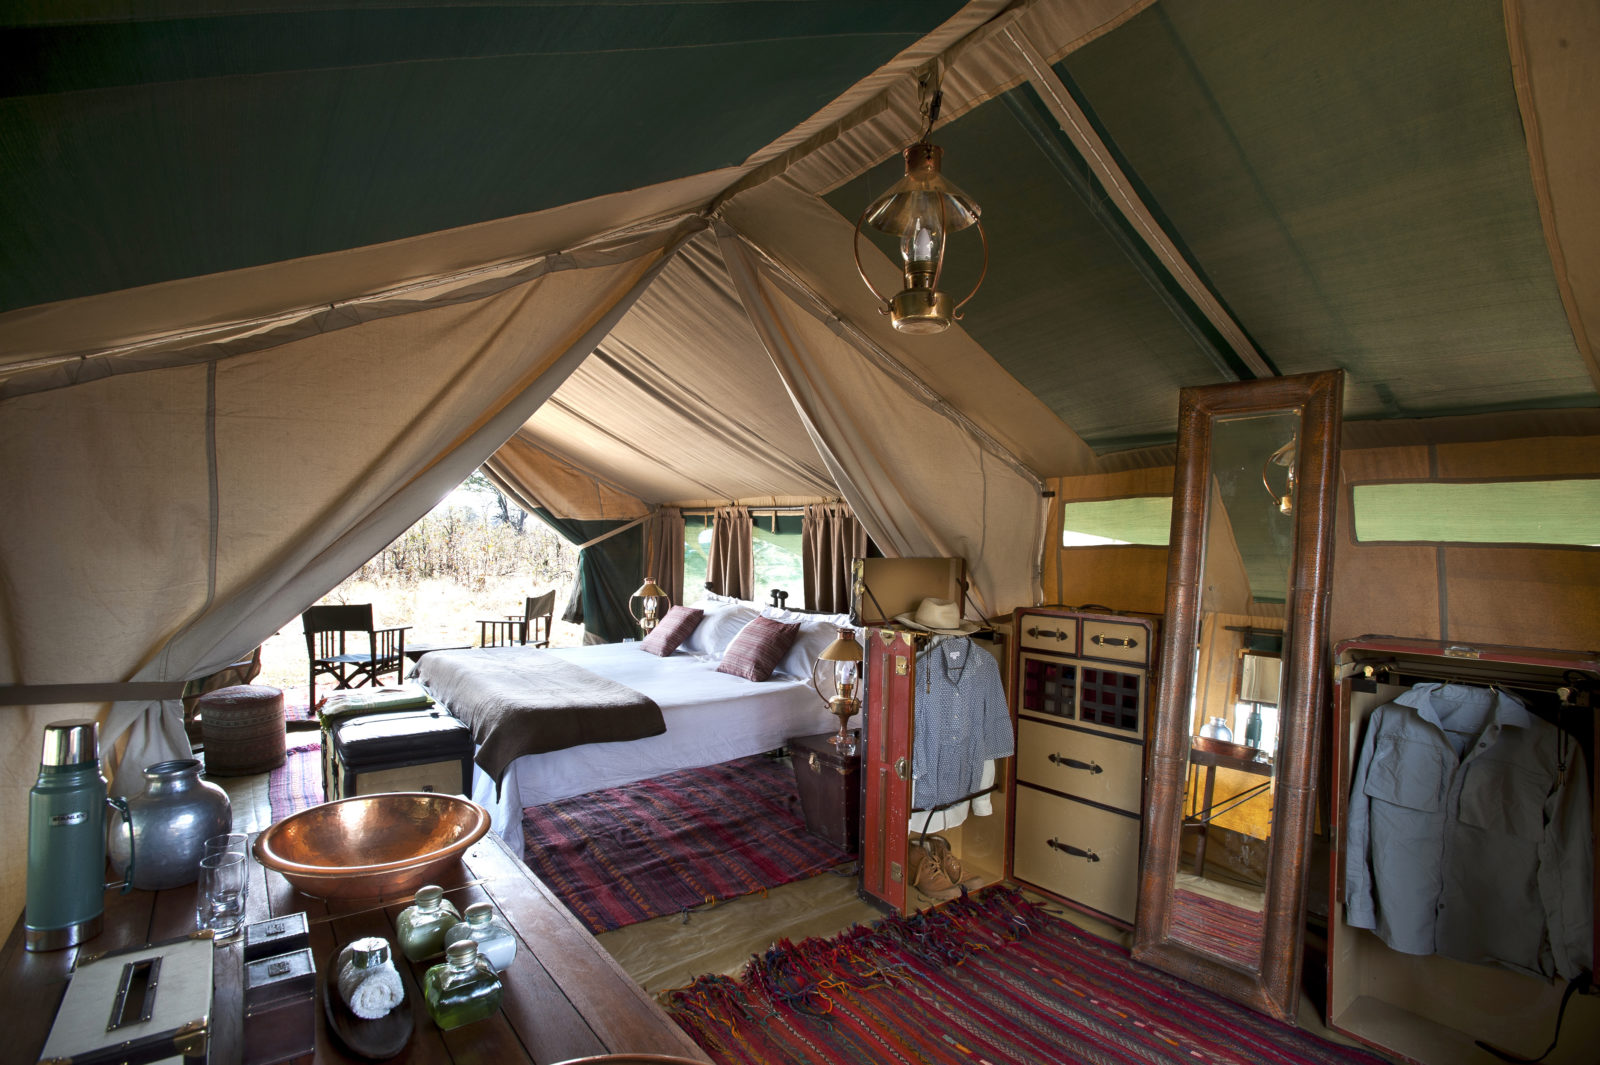 Luxurious guest tent with carpets and copper basin at Selinda Explorers